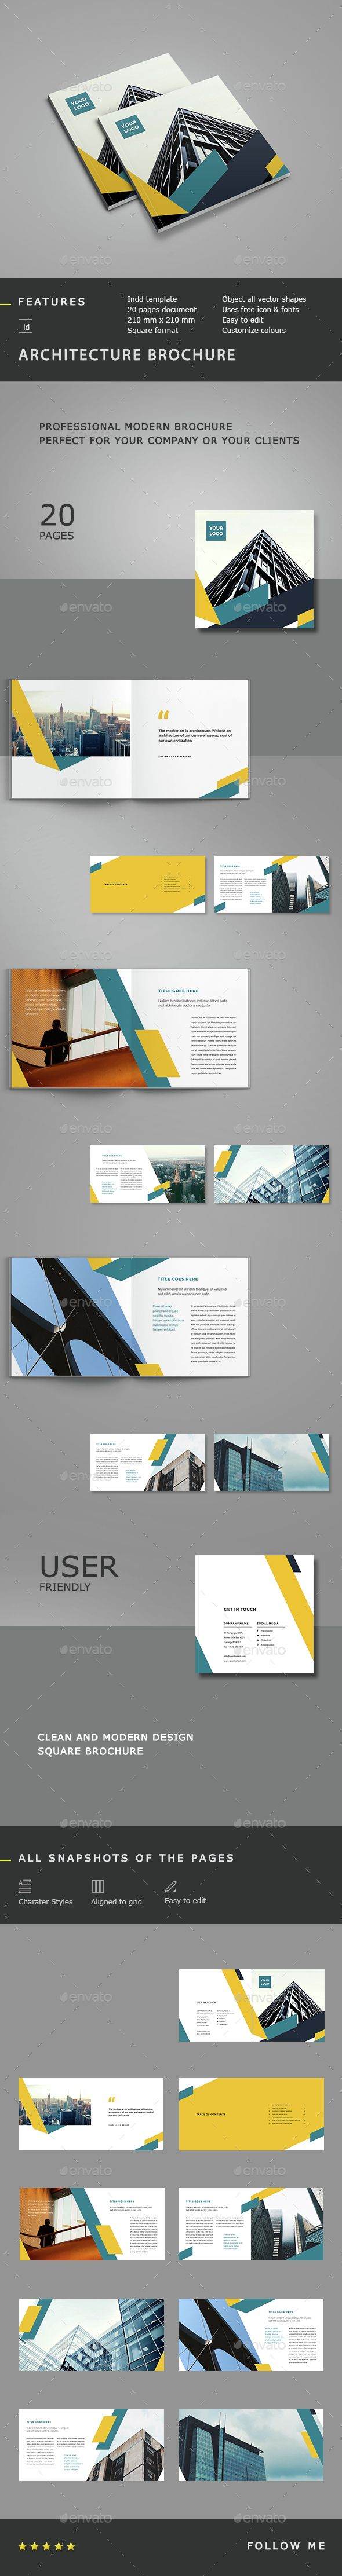 Architecture Square Brochure Template InDesign INDD. Download here: http://graphicriver.net/item/architecture-square-brochure-/14890888?ref=ksioks